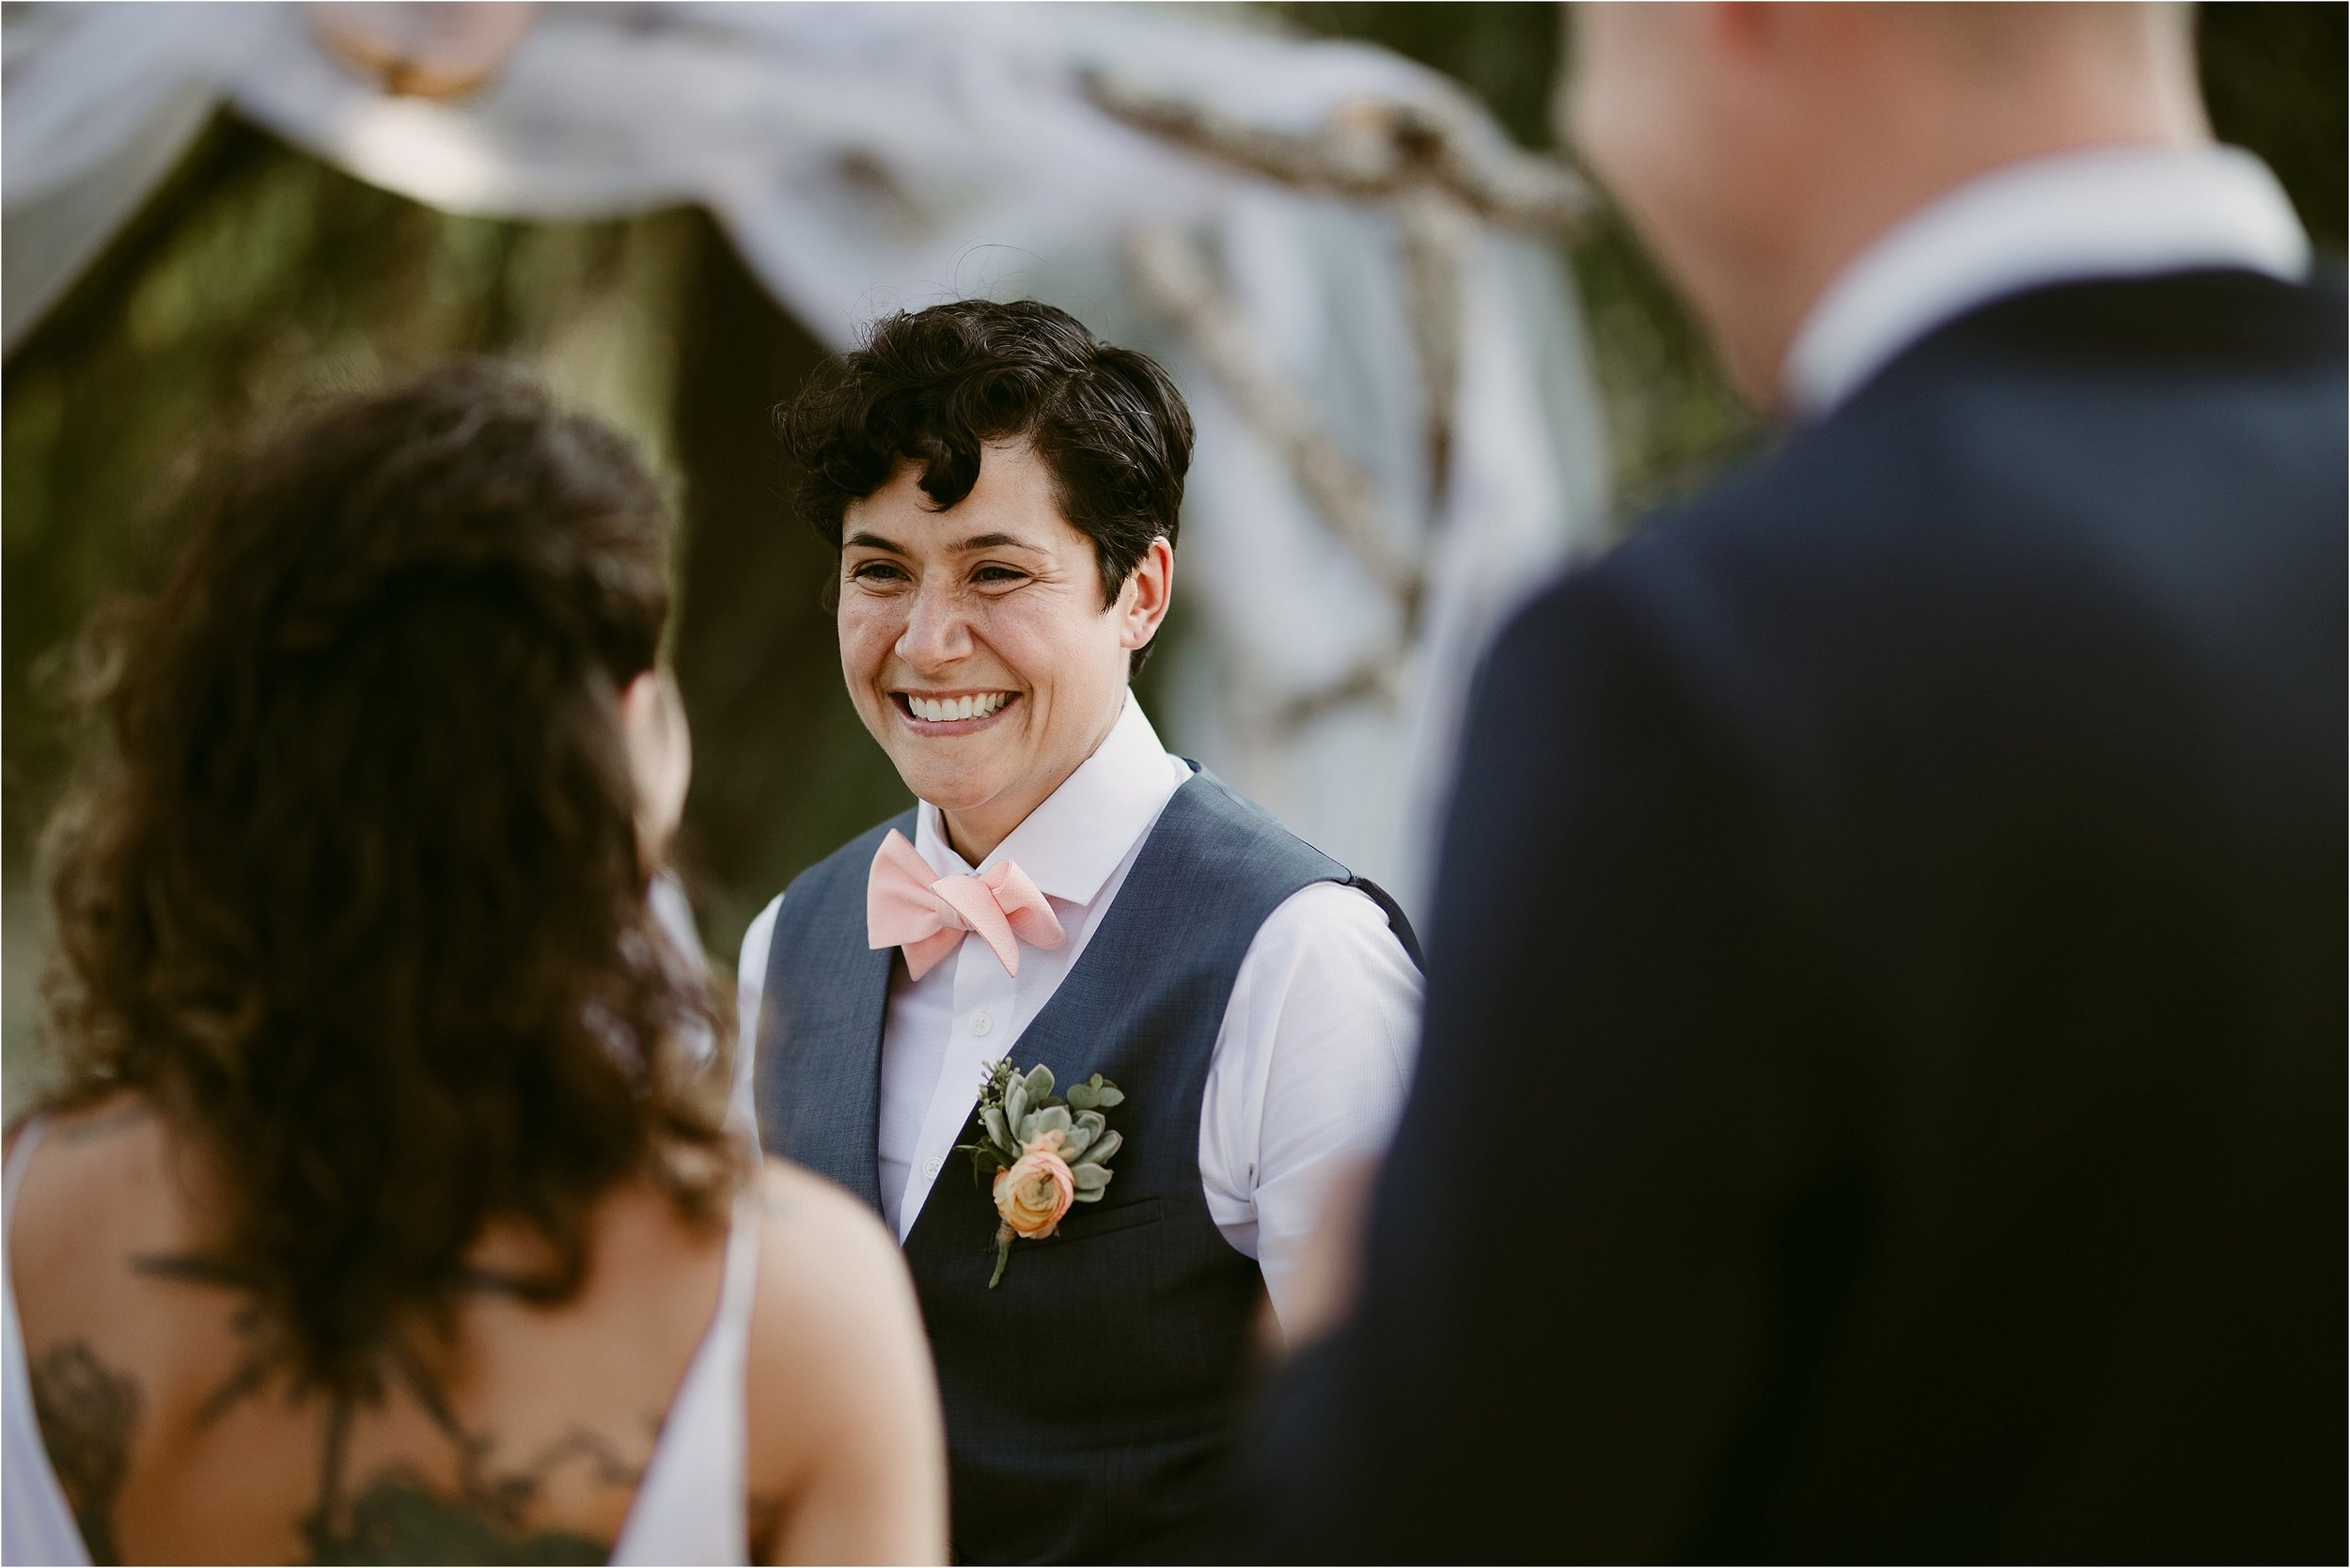 same-sex-wedding-catherdral-park-portland-indie-photographer_0201.jpg